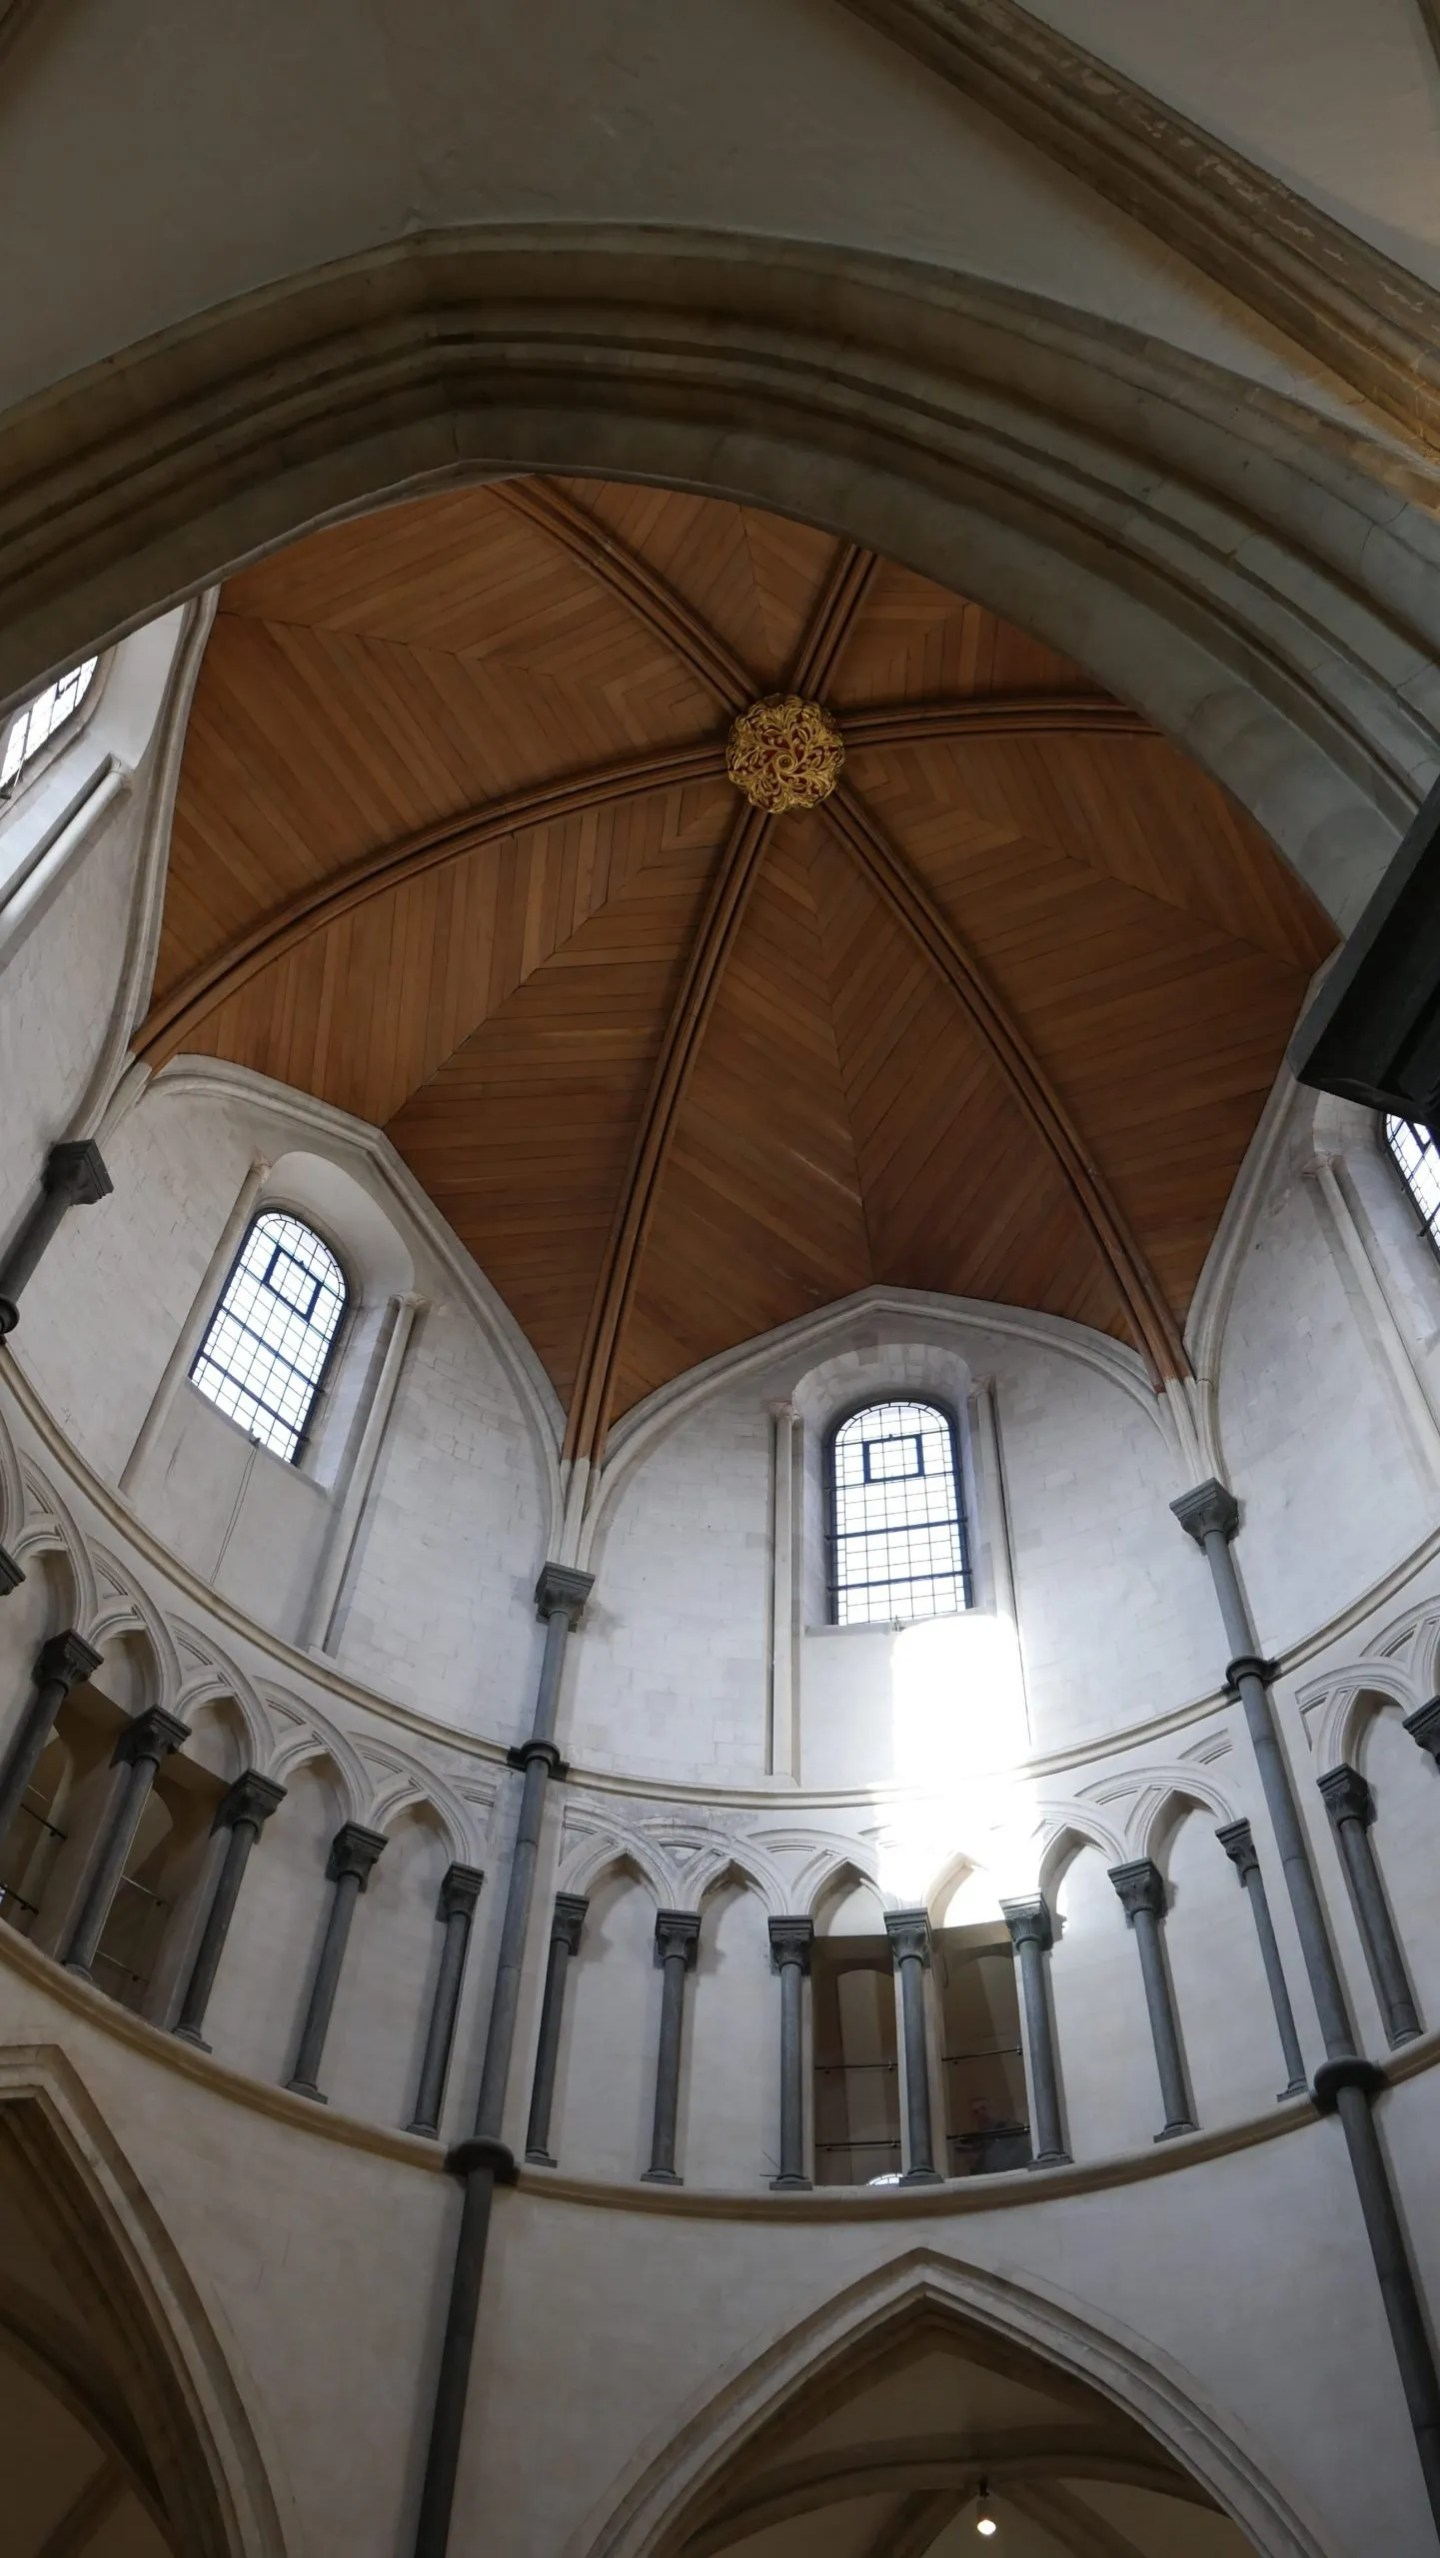 Visiting the Temple Church London